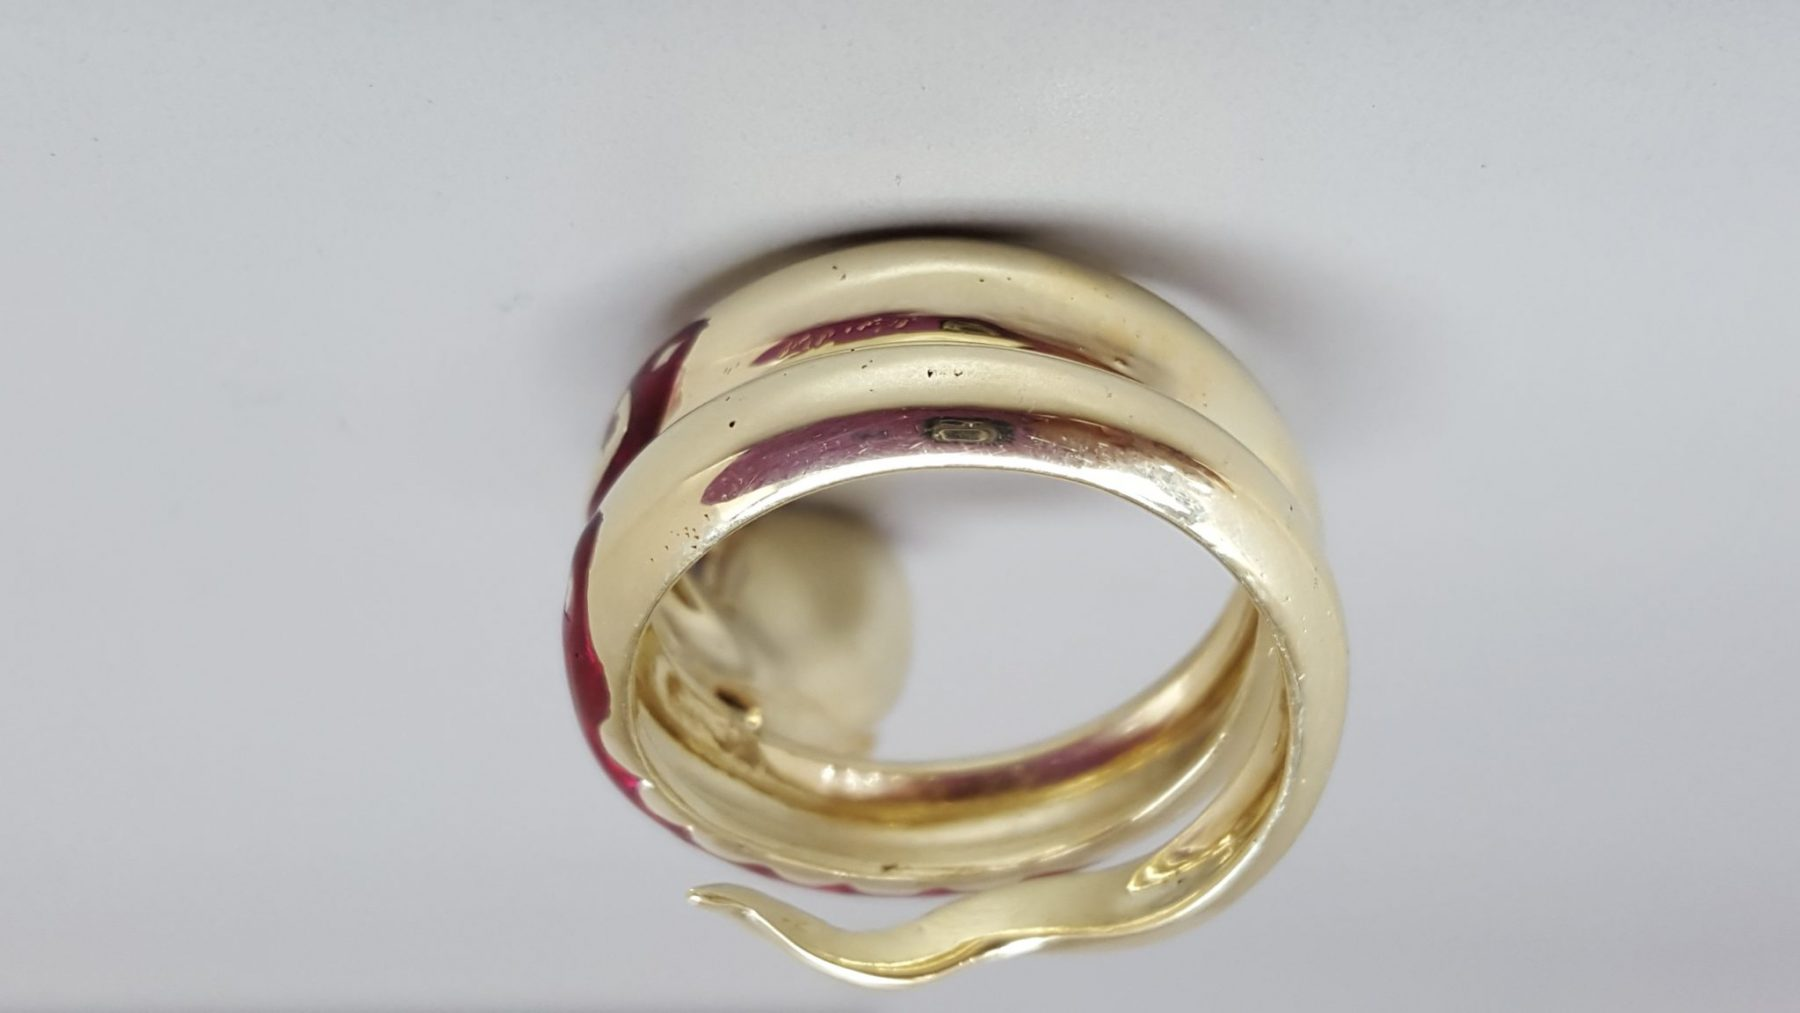 After Porosity Repaired on shank of snake ring